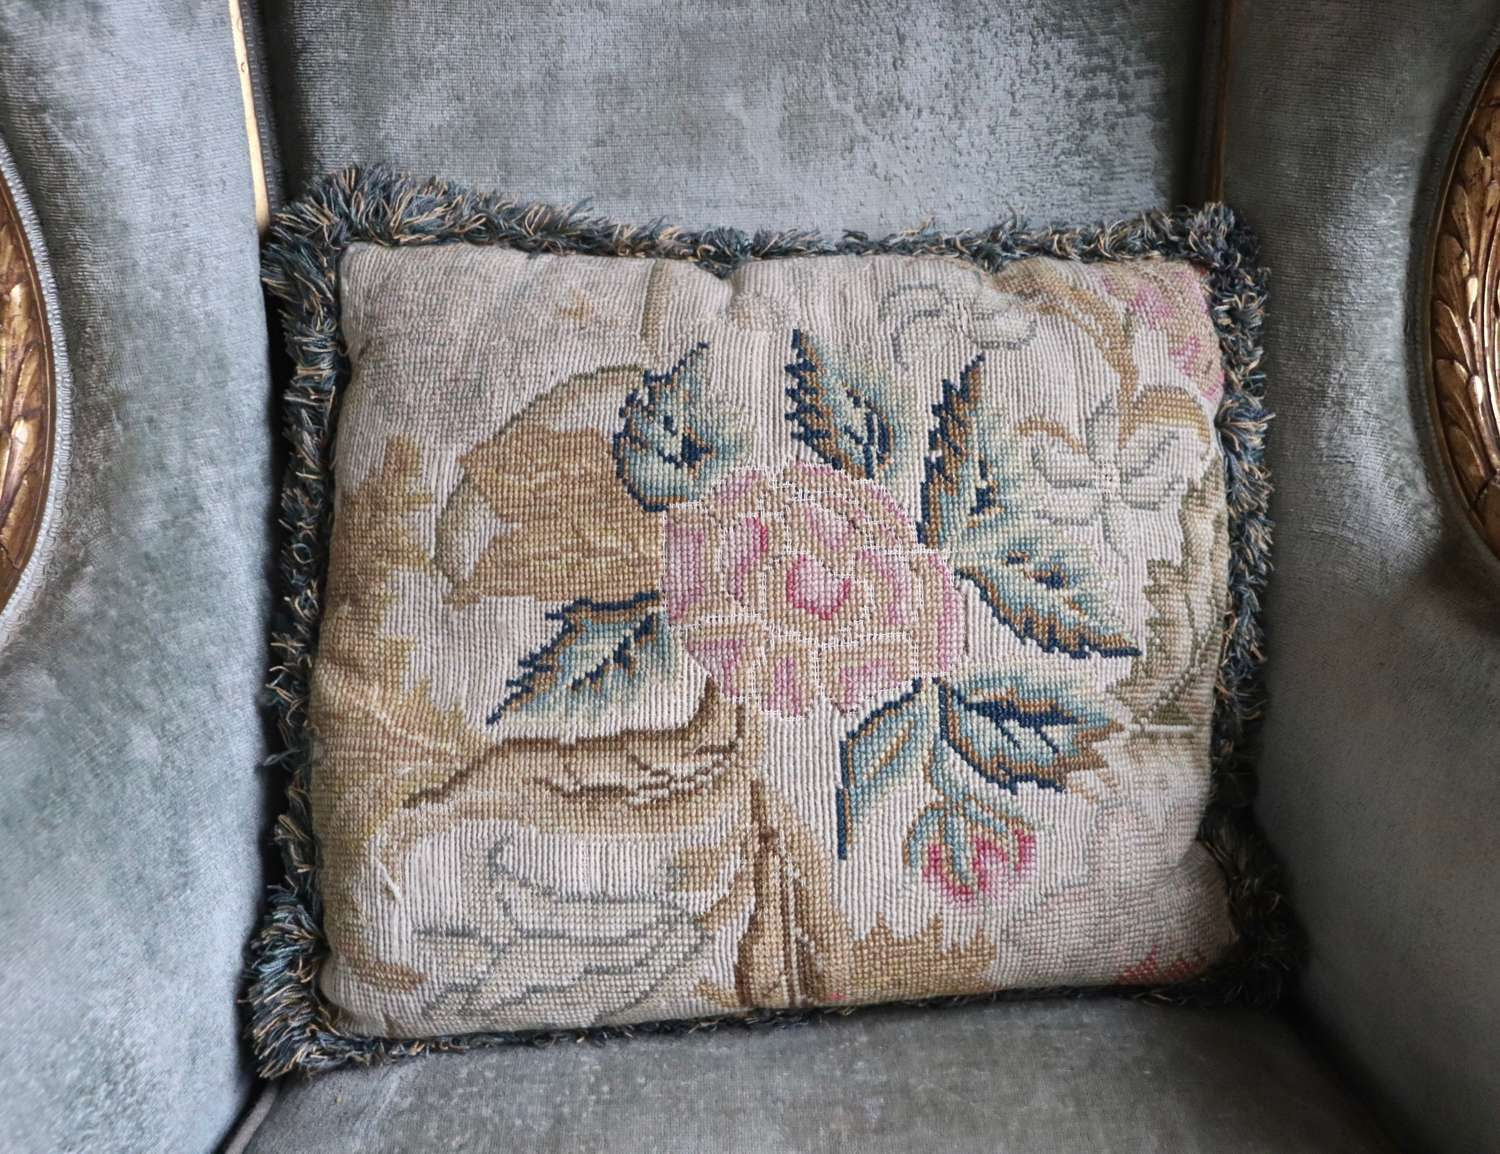 Needlepoint cushion backed in linen